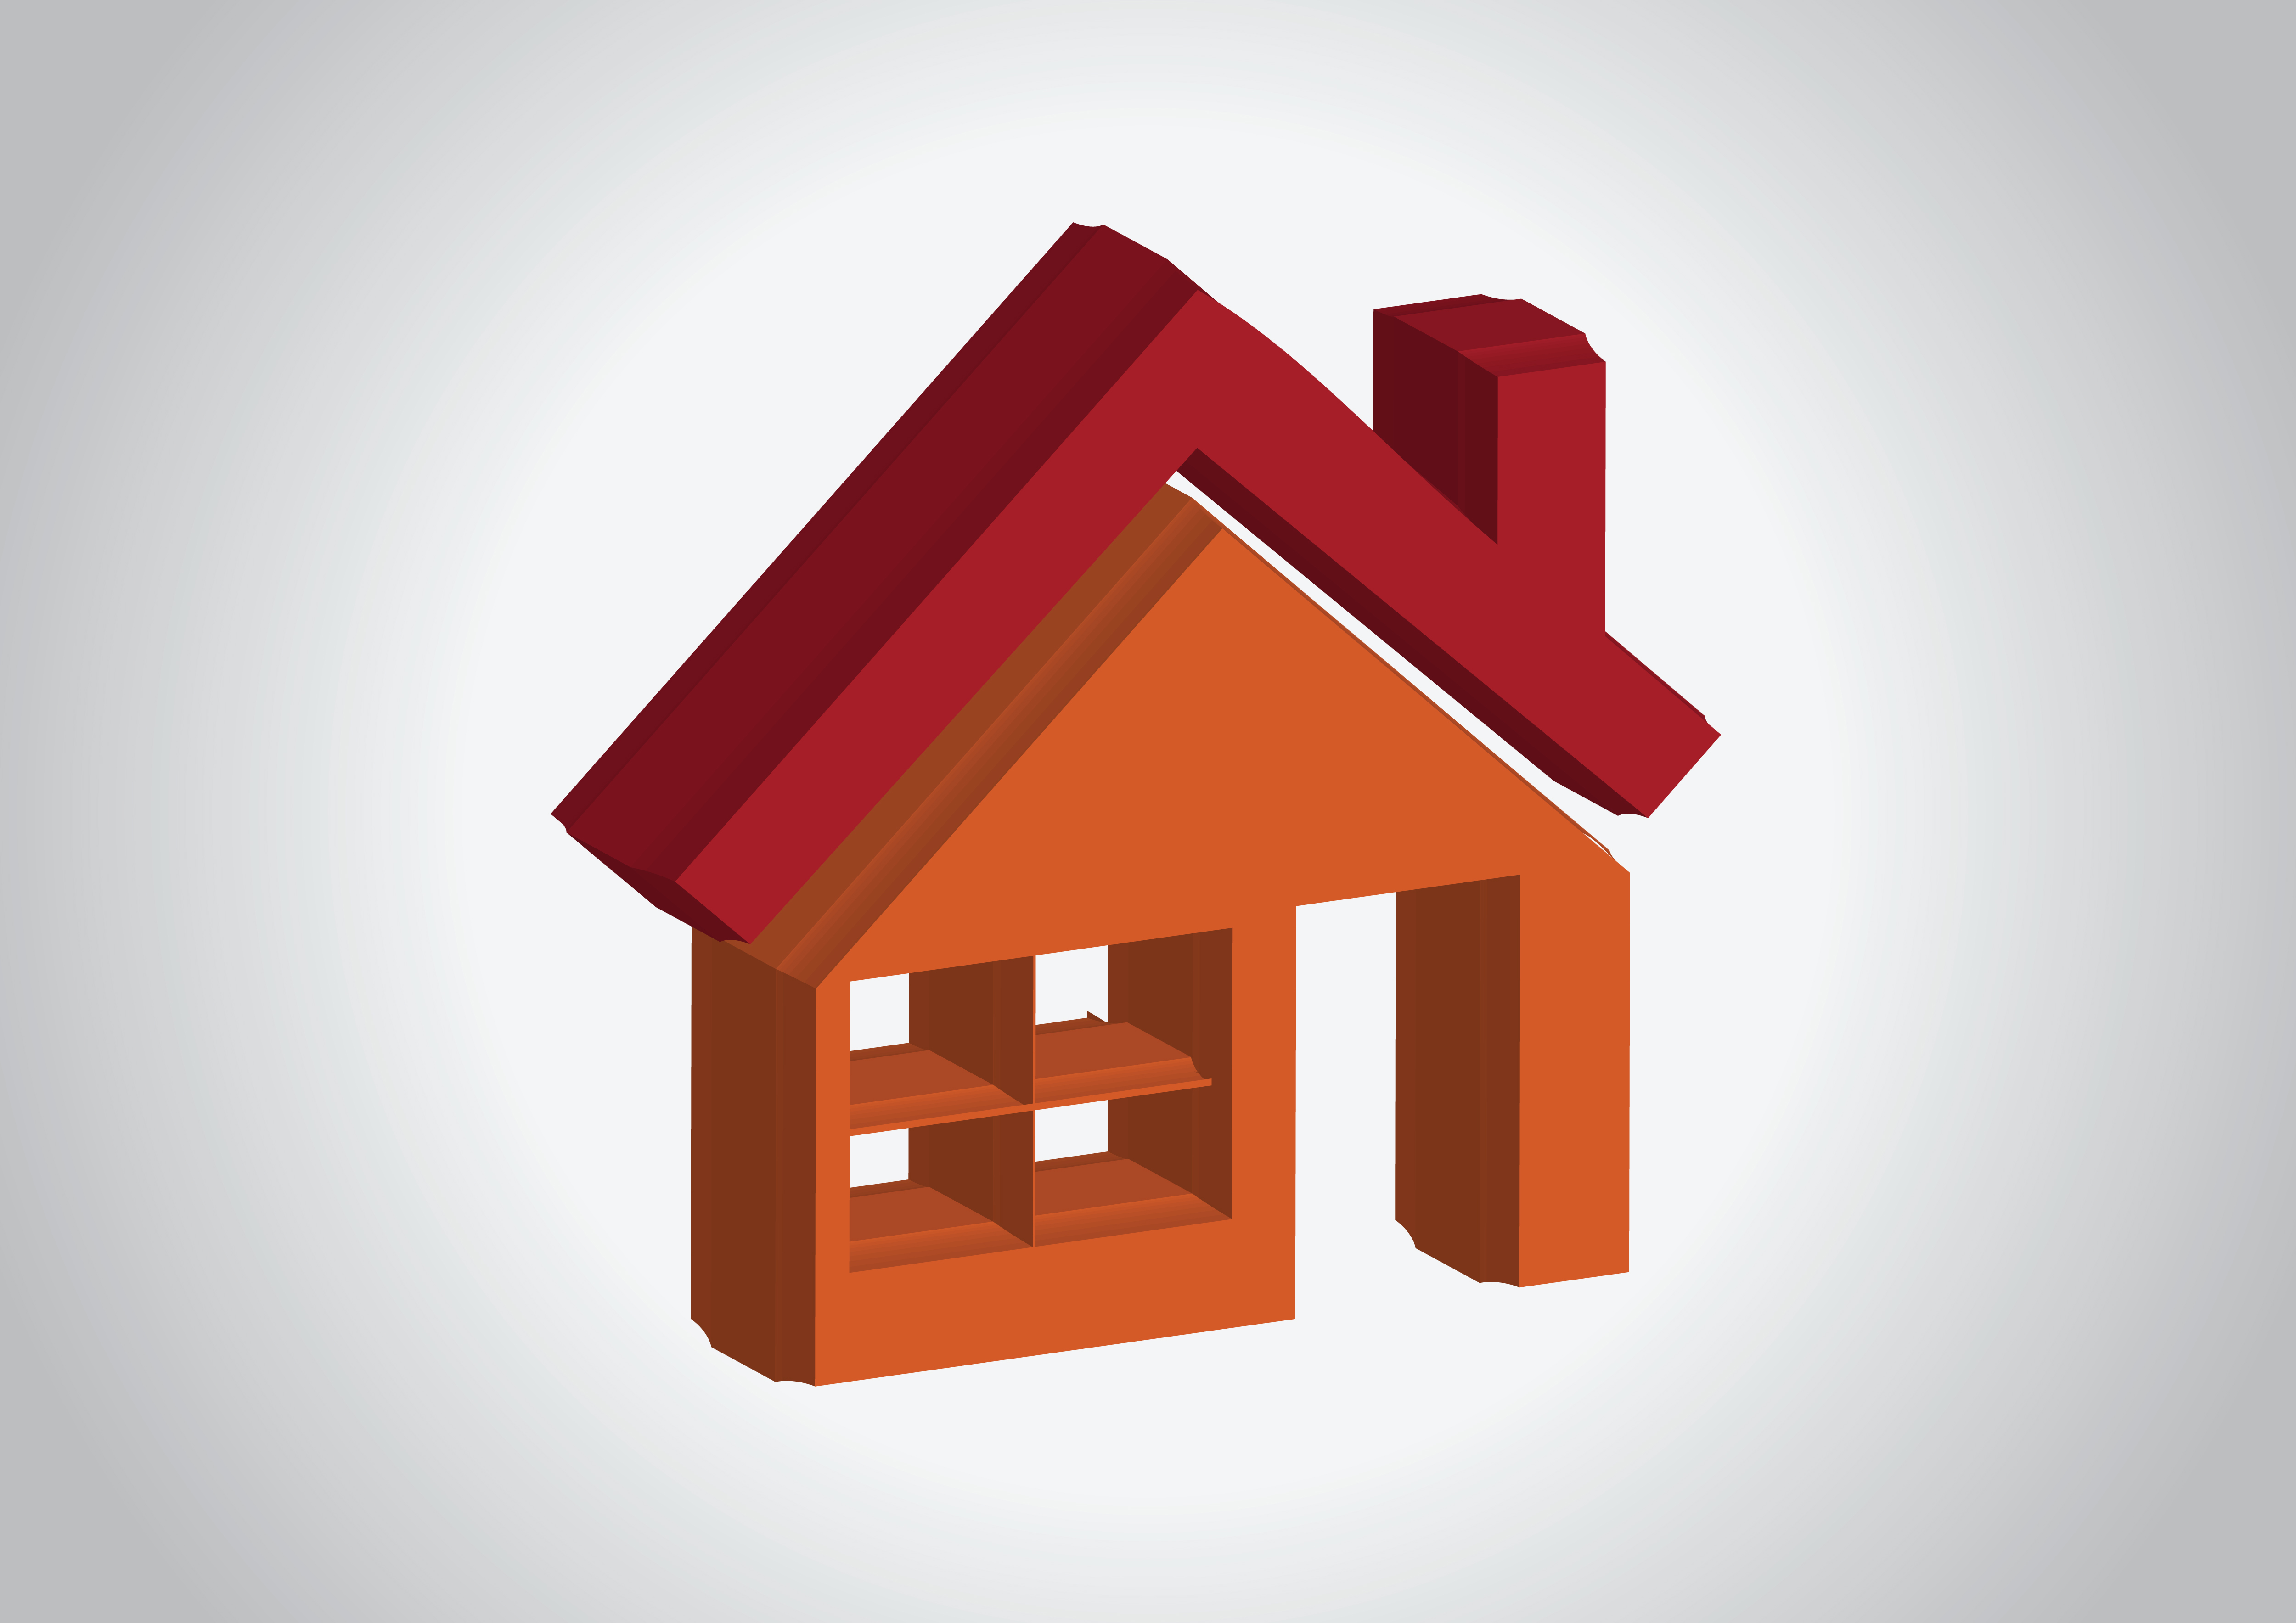 House Icon And Real Estate Building Abstract Design